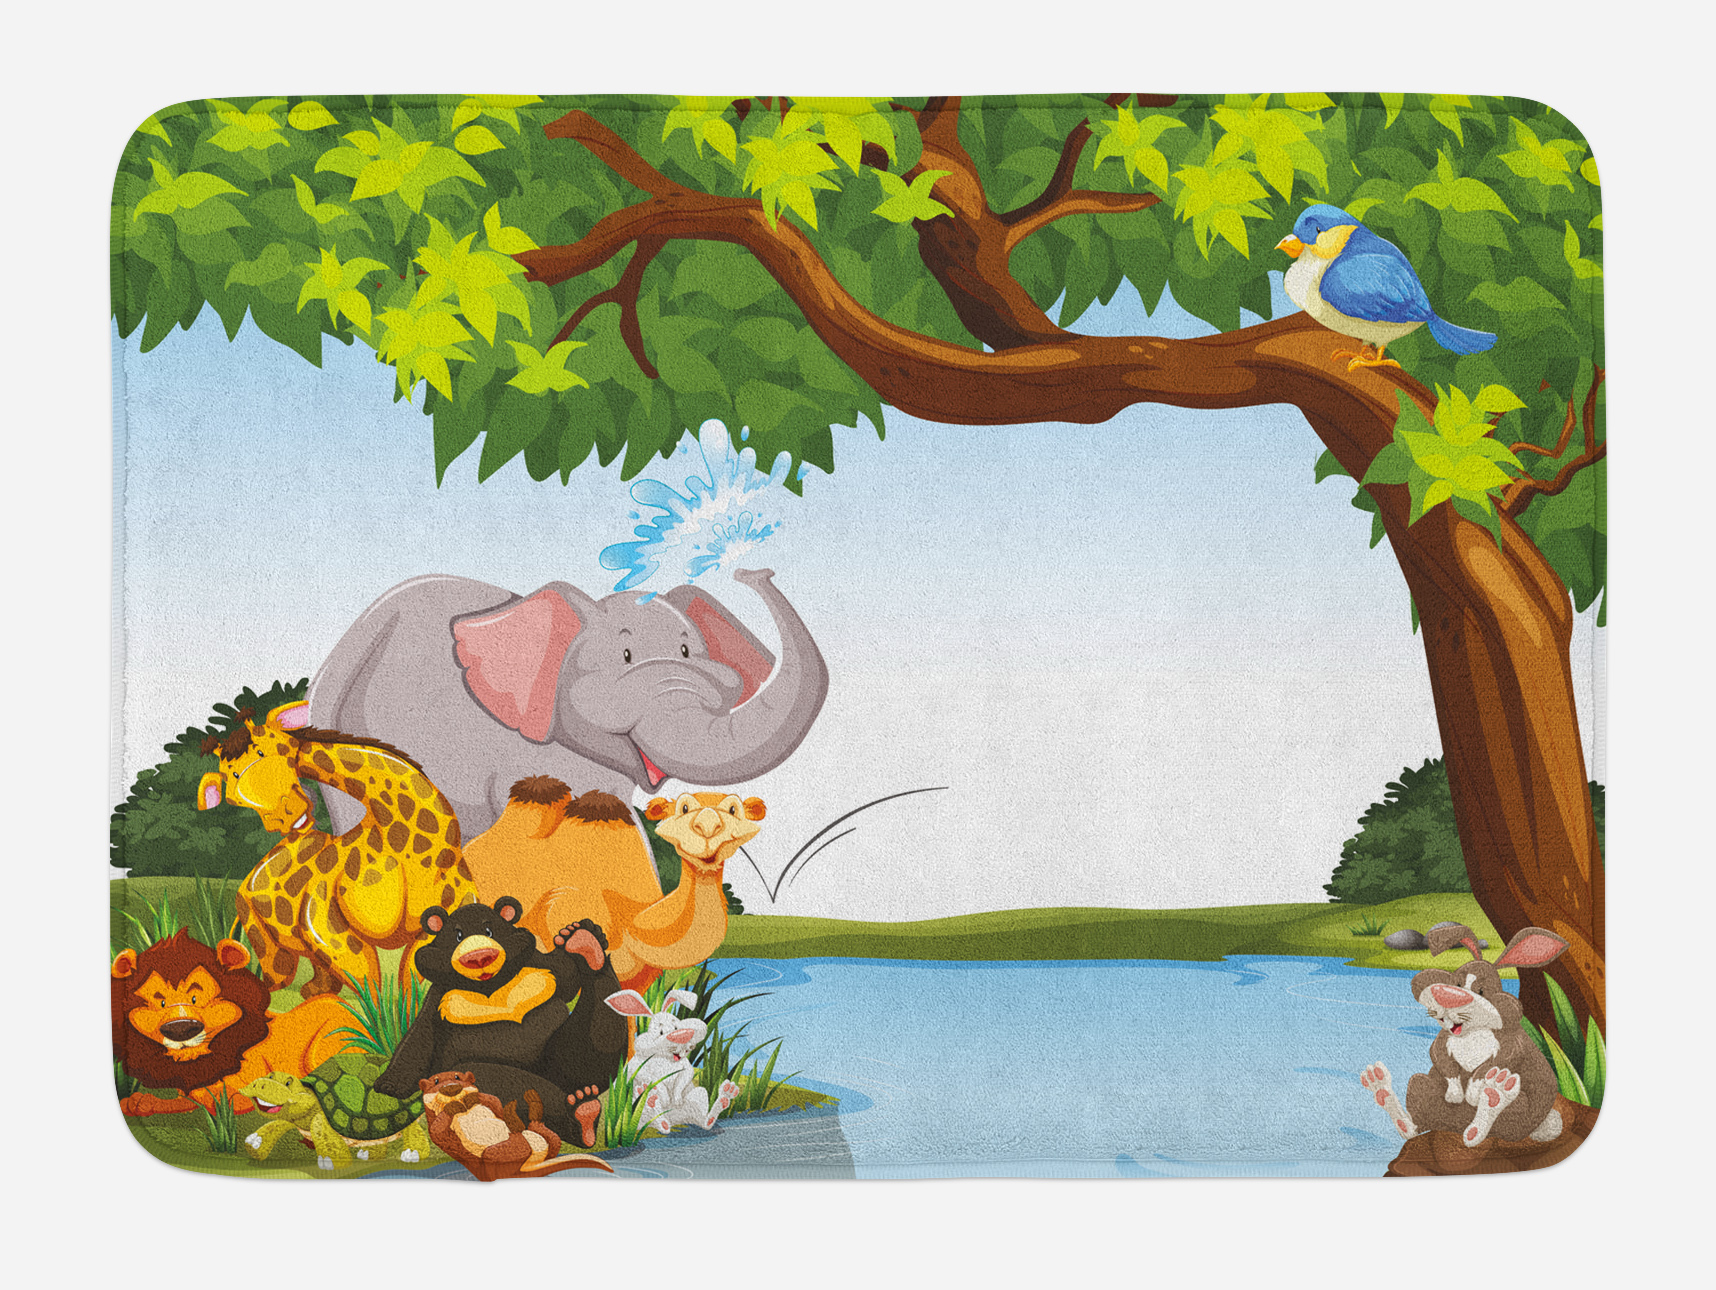 Kids Bath Mat, Various Cartoon Style Animals Together by River Bank Tree Bird Cute Funny... by 3decor llc